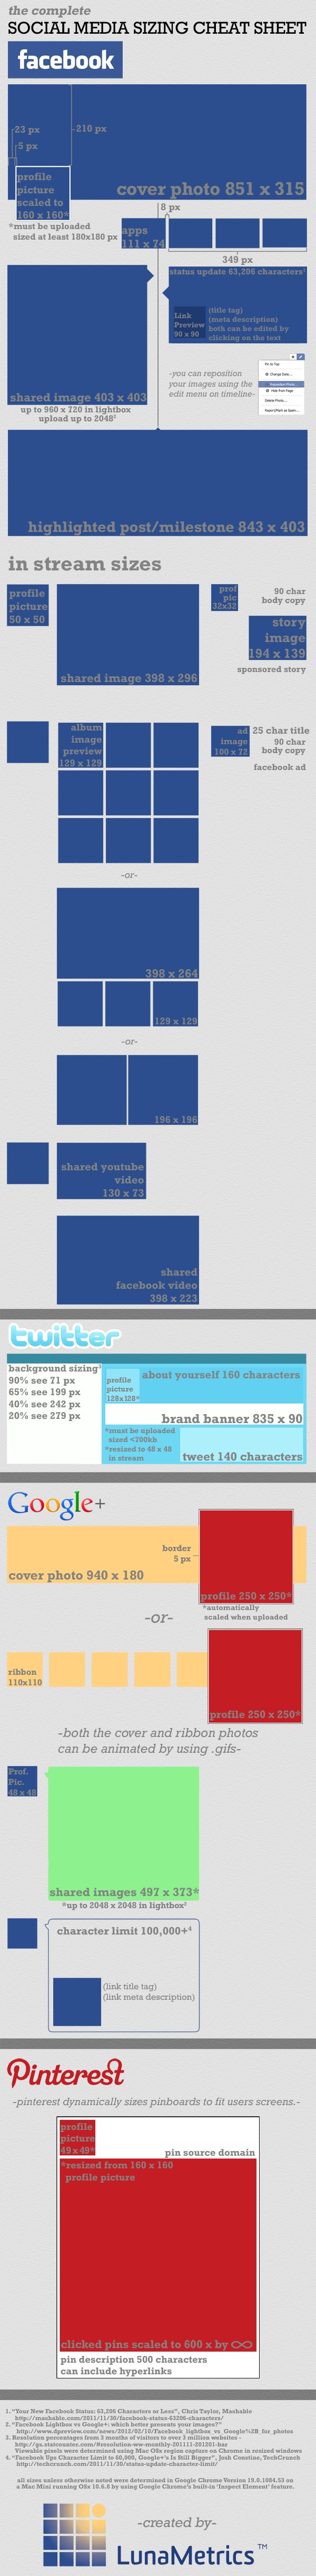 AMAZING!  The Complete Social Media Sizing Cheat Sheet [#infographic]: Social Media, Cheat Sheets, Media Image, Media Sizing, Image Size, Socialmedia, Infographic